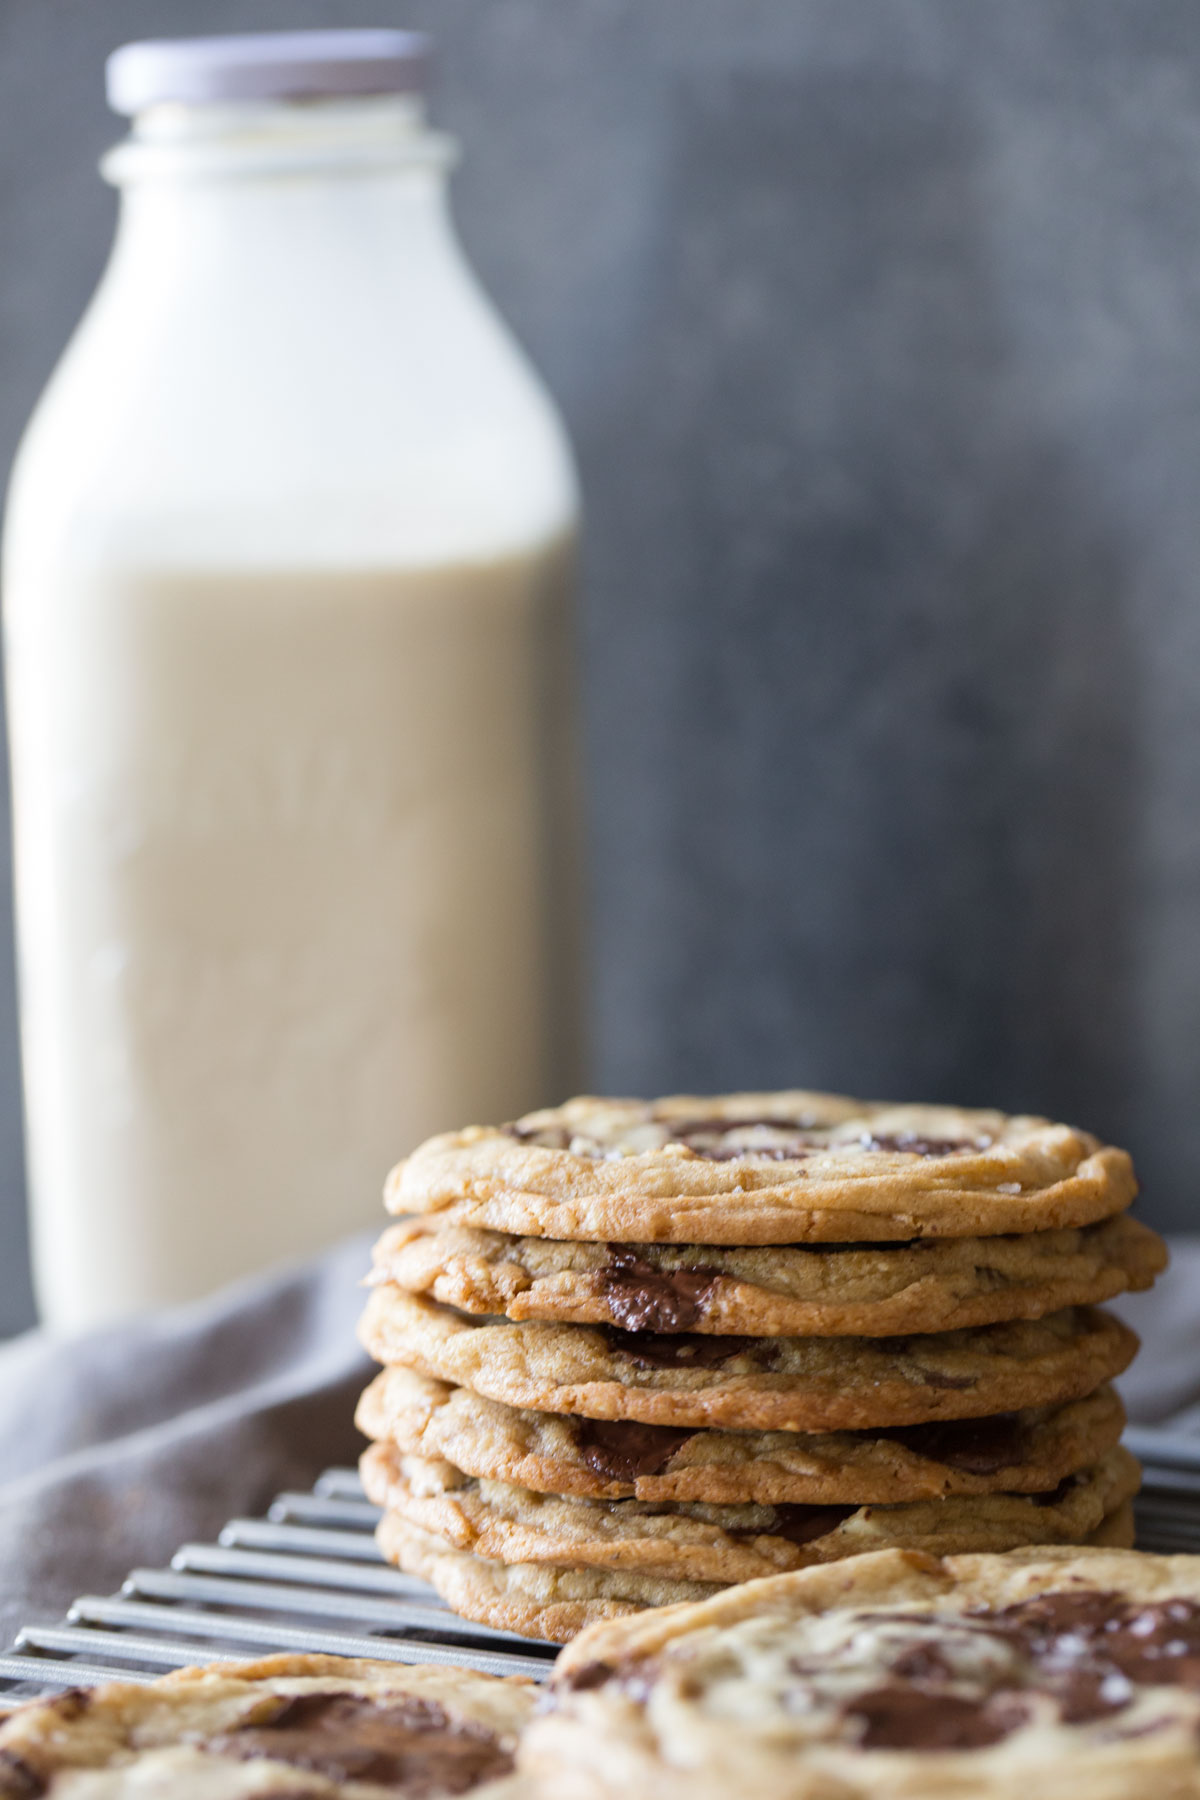 Toffee Almond Chocolate Chunk Cookies on a cooling rack with a bottle of milk in the background.